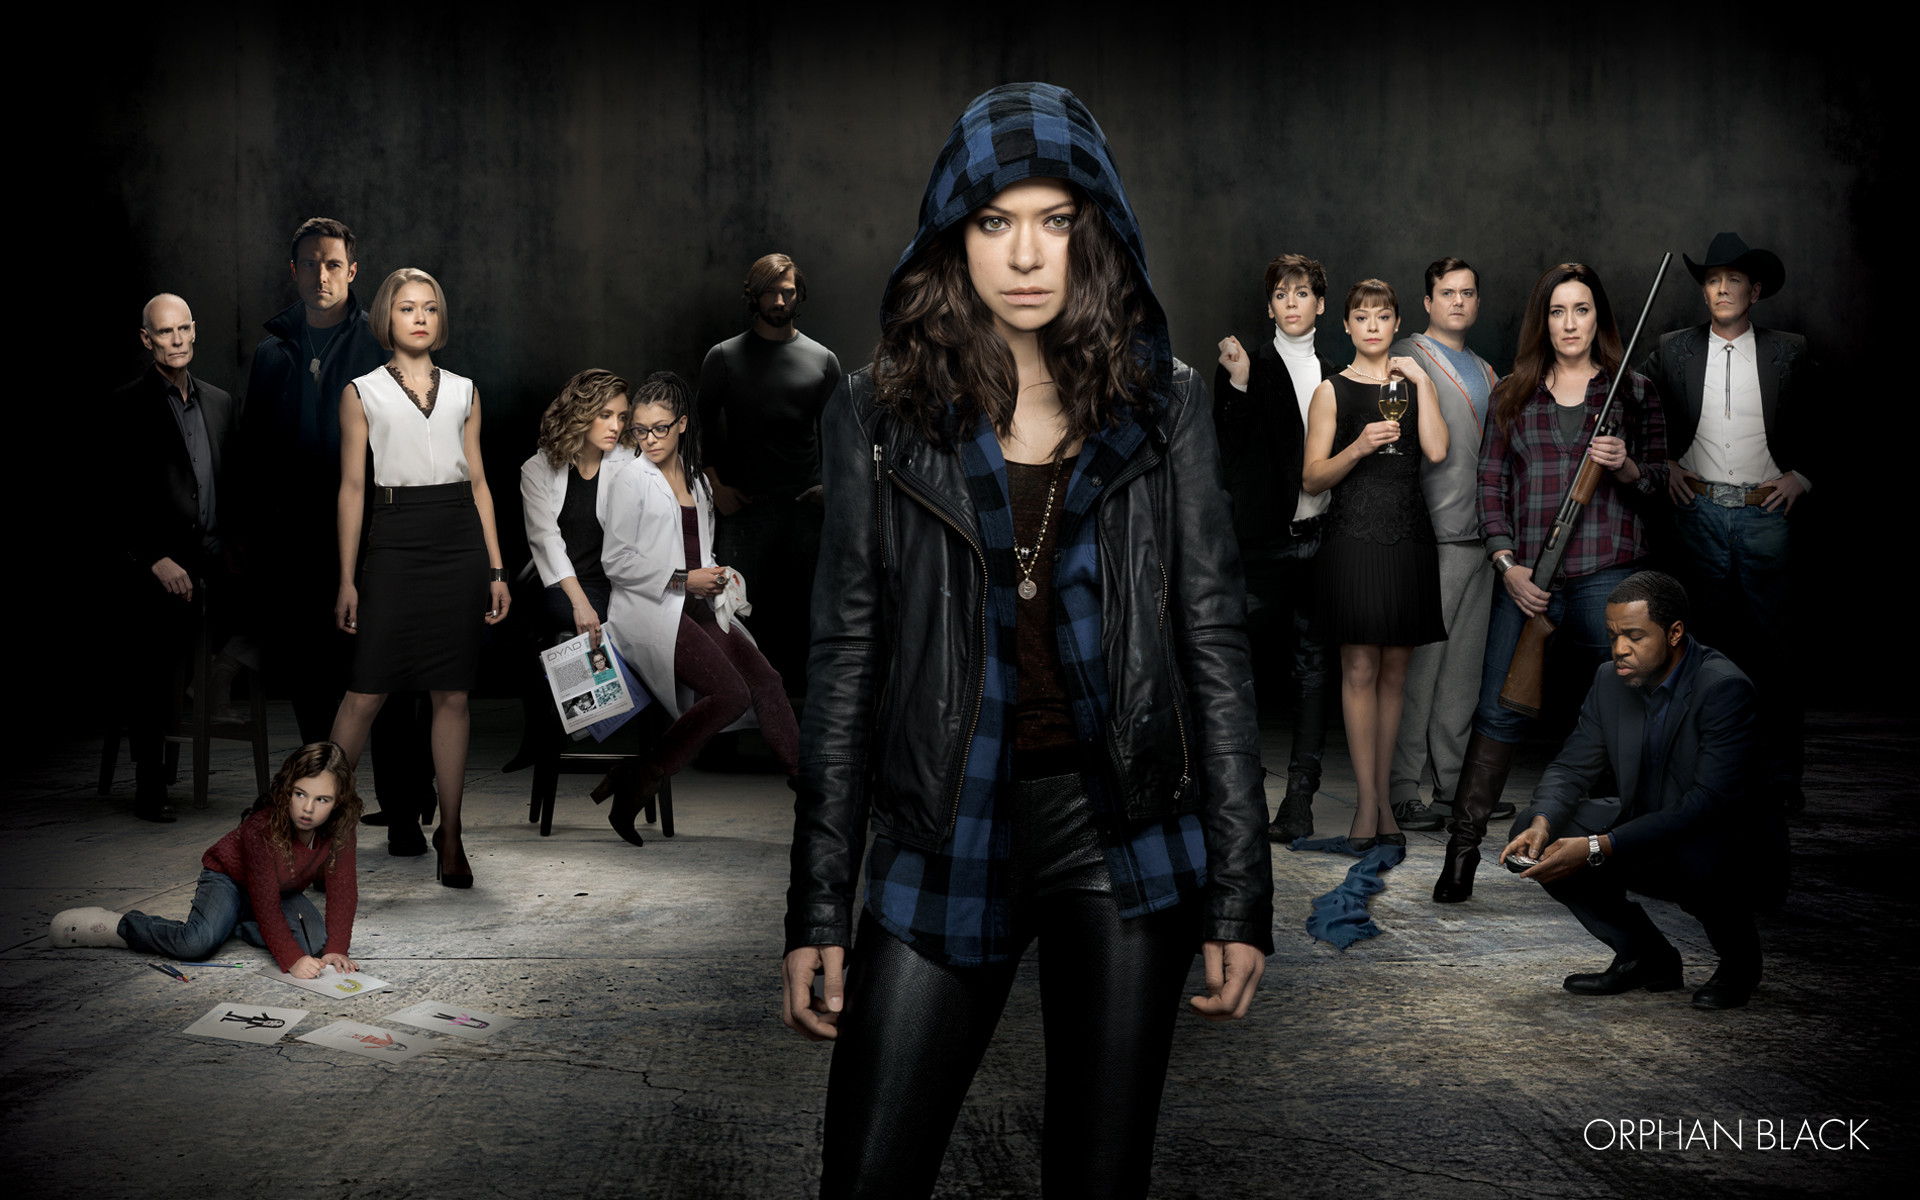 Orphan Black Wallpapers 70 images 1920x1200